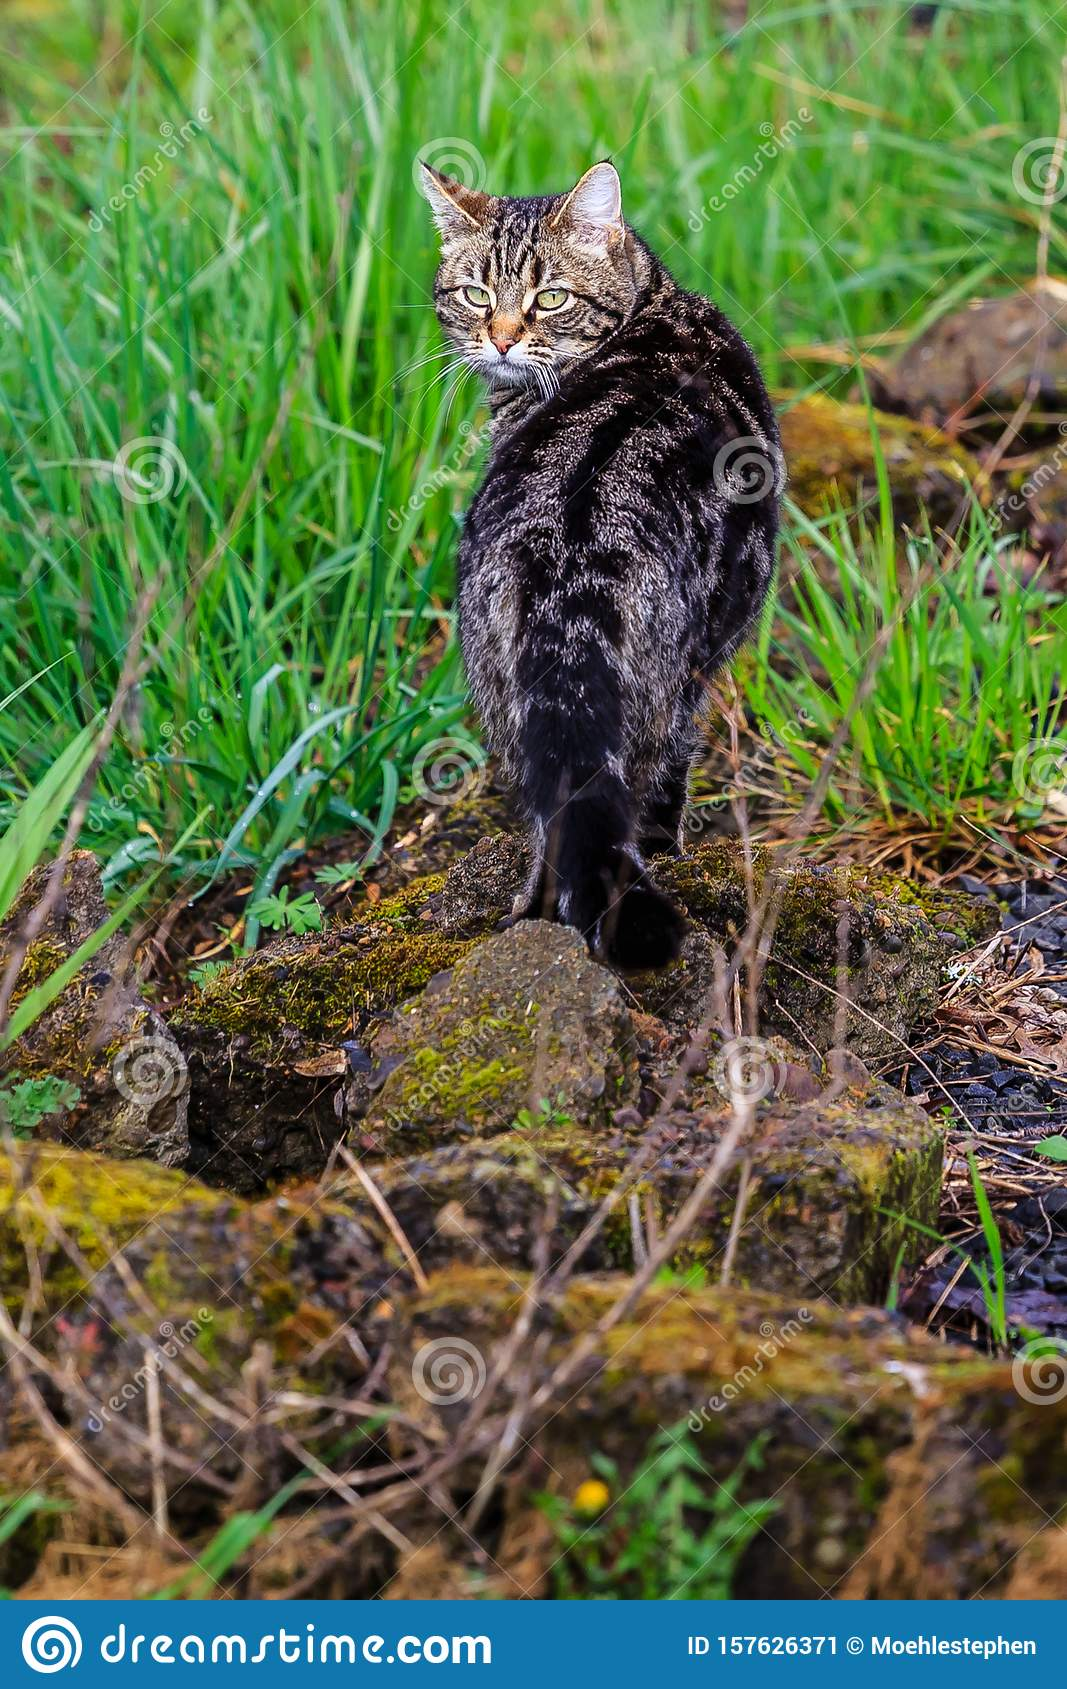 Cat on the Prowl in the Yard